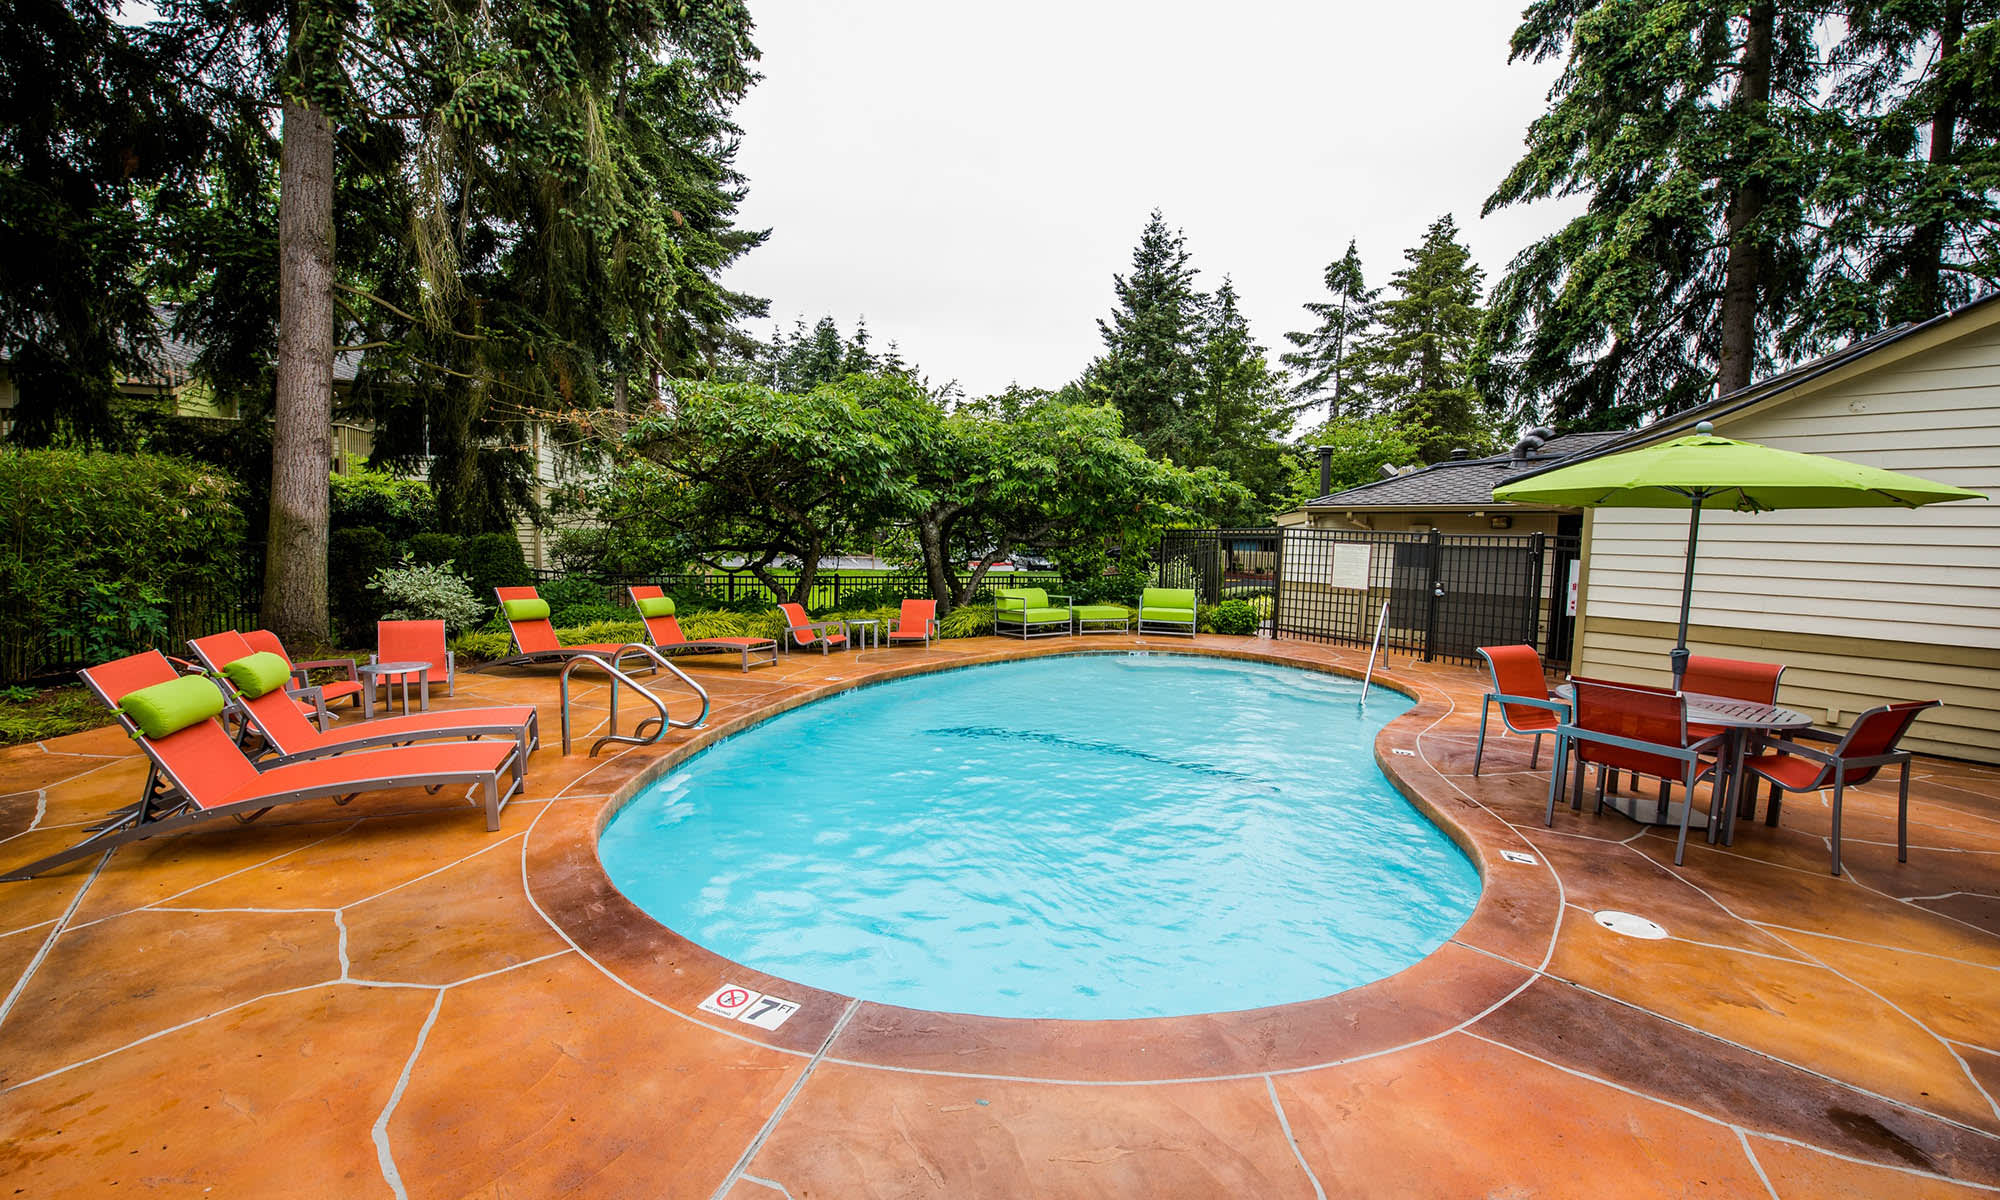 Privacy policy for Edgewood Park Apartments in Bellevue, Washington